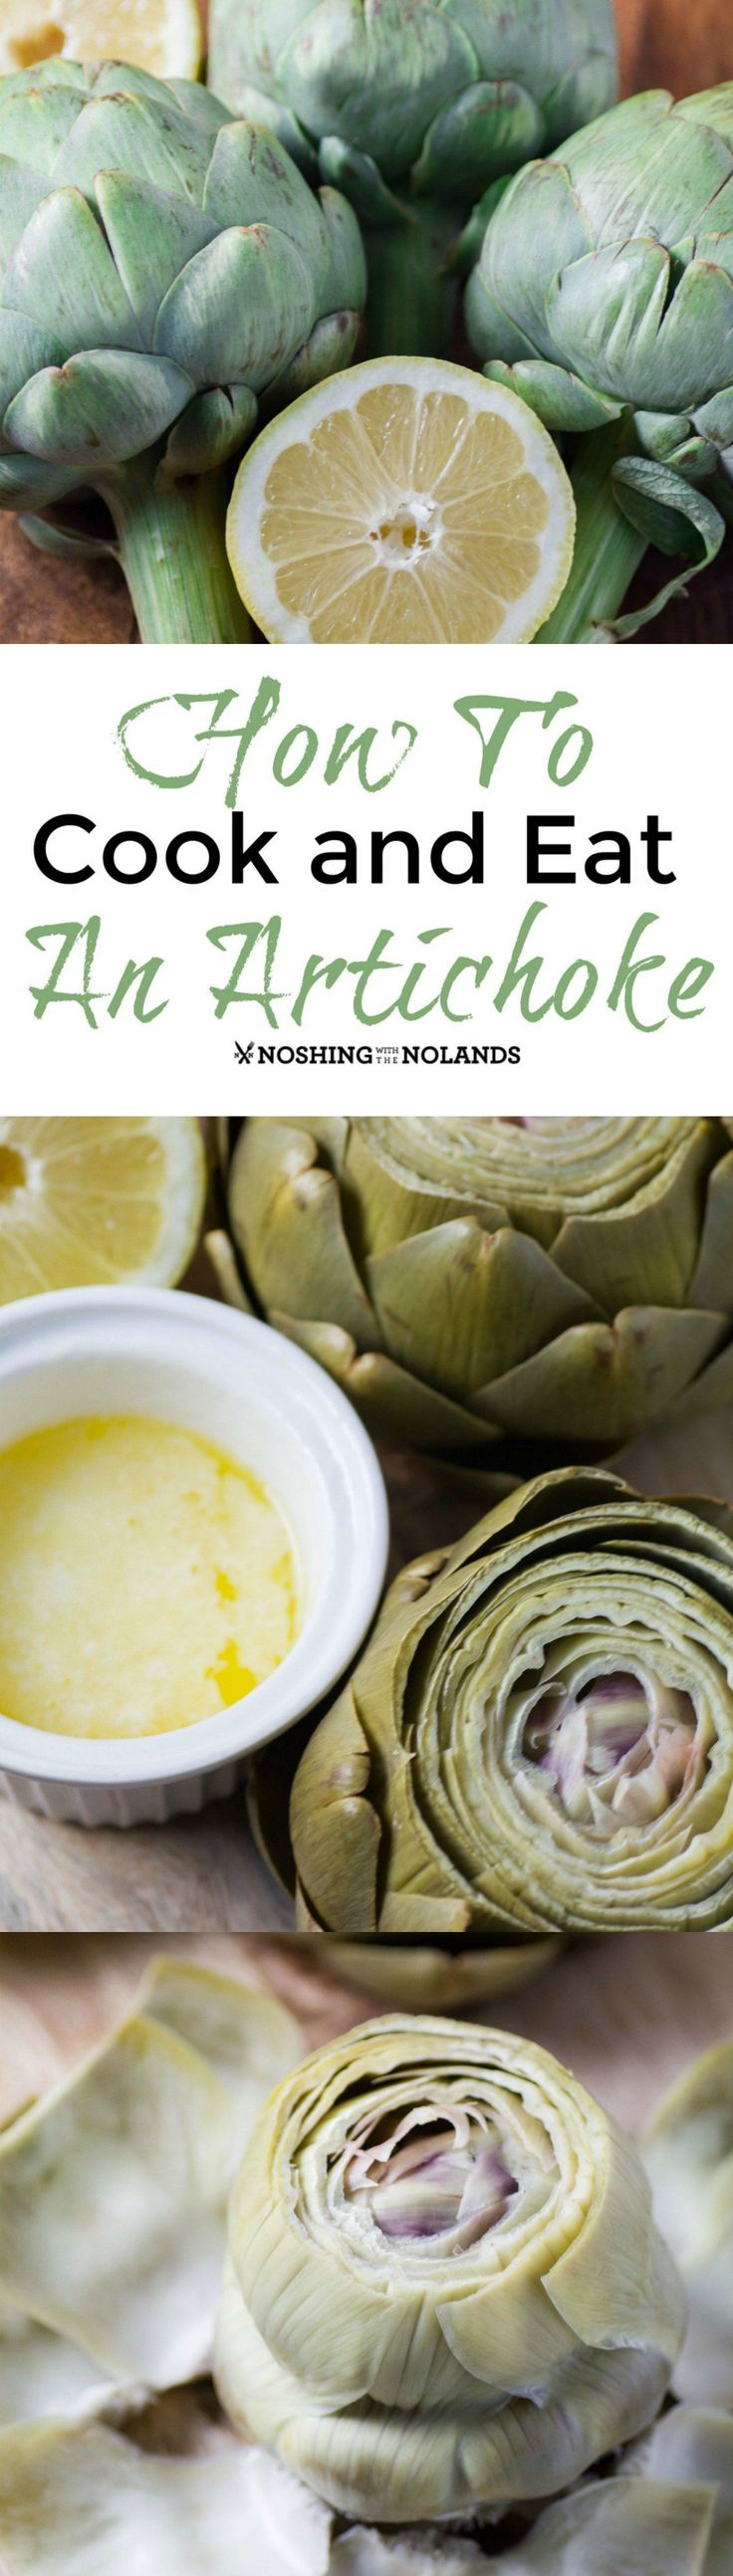 How To Cook and Eat An Artichoke by Noshing With The Nolands will help you to demystify this almost alien vegetable.